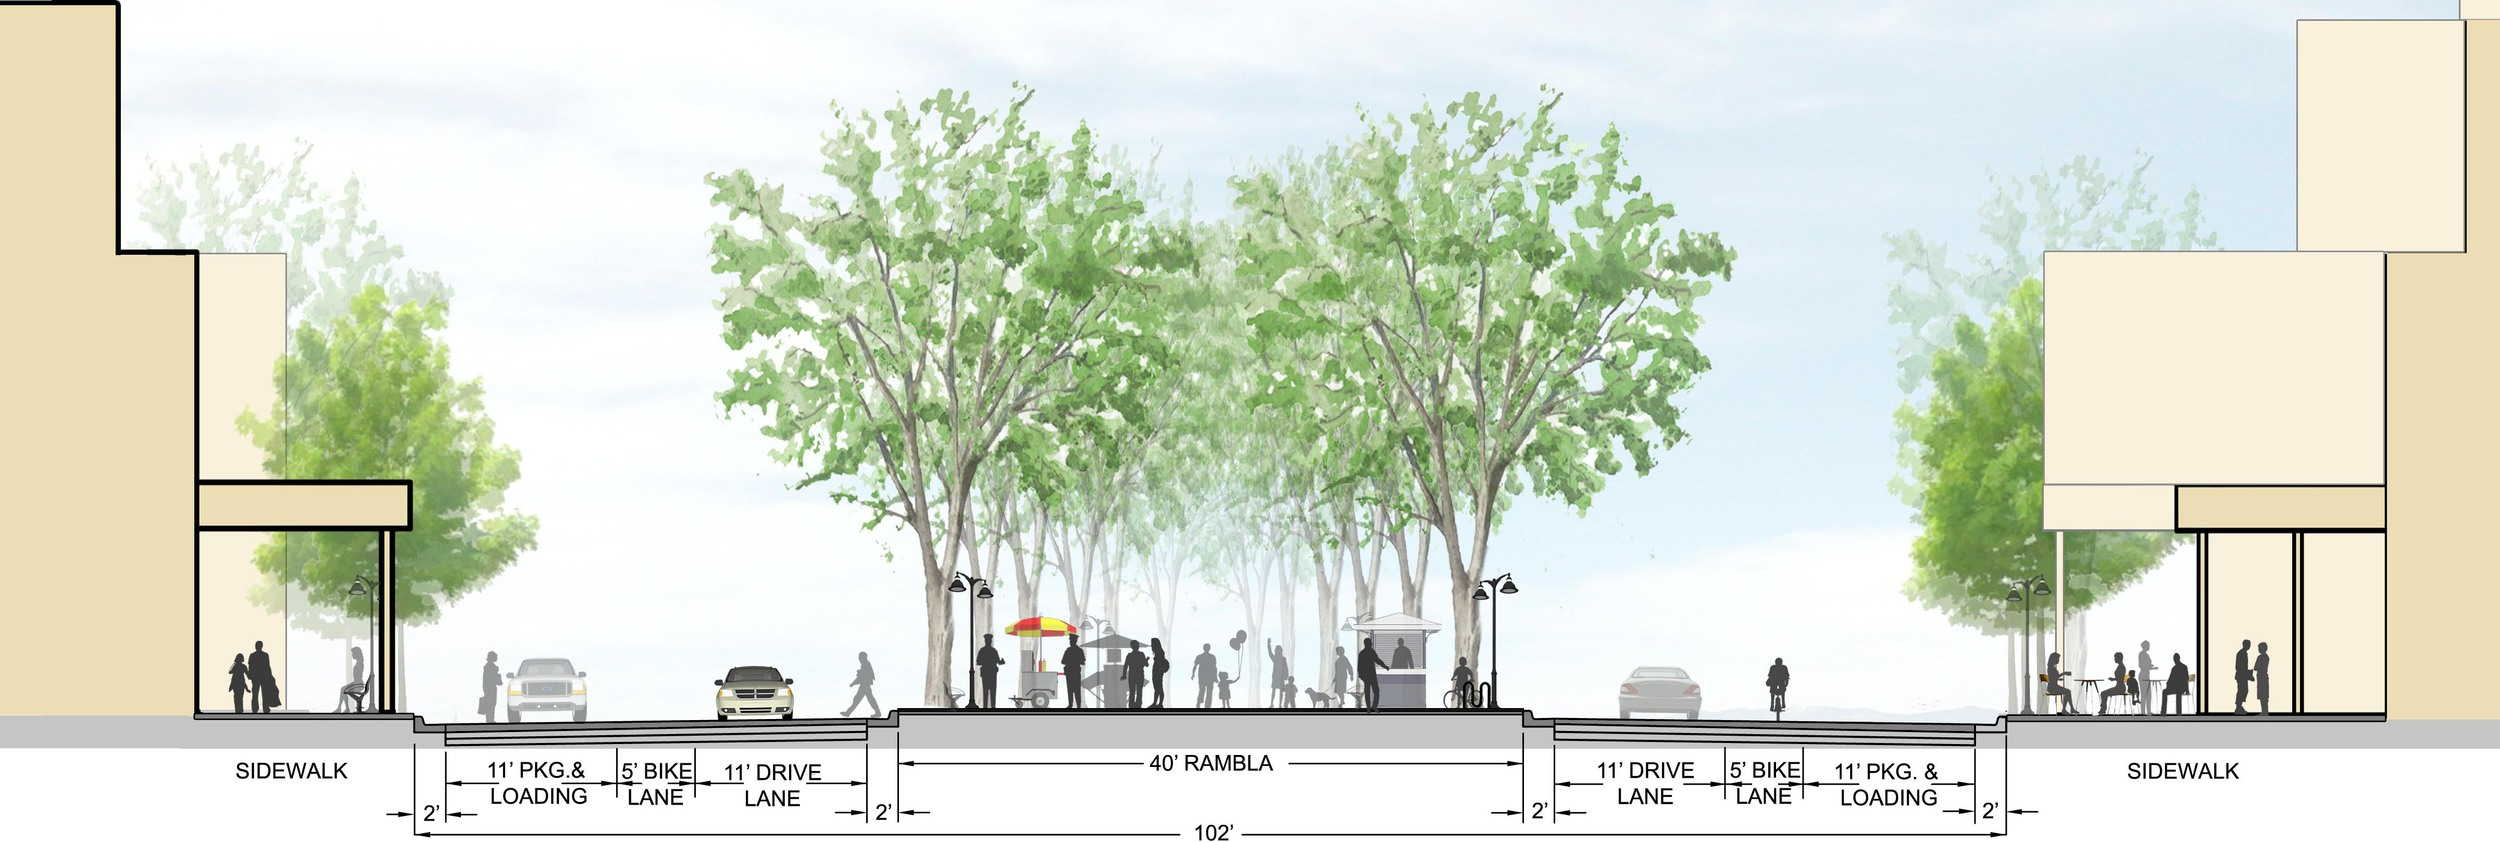 Concept drawing for rambla in parkway